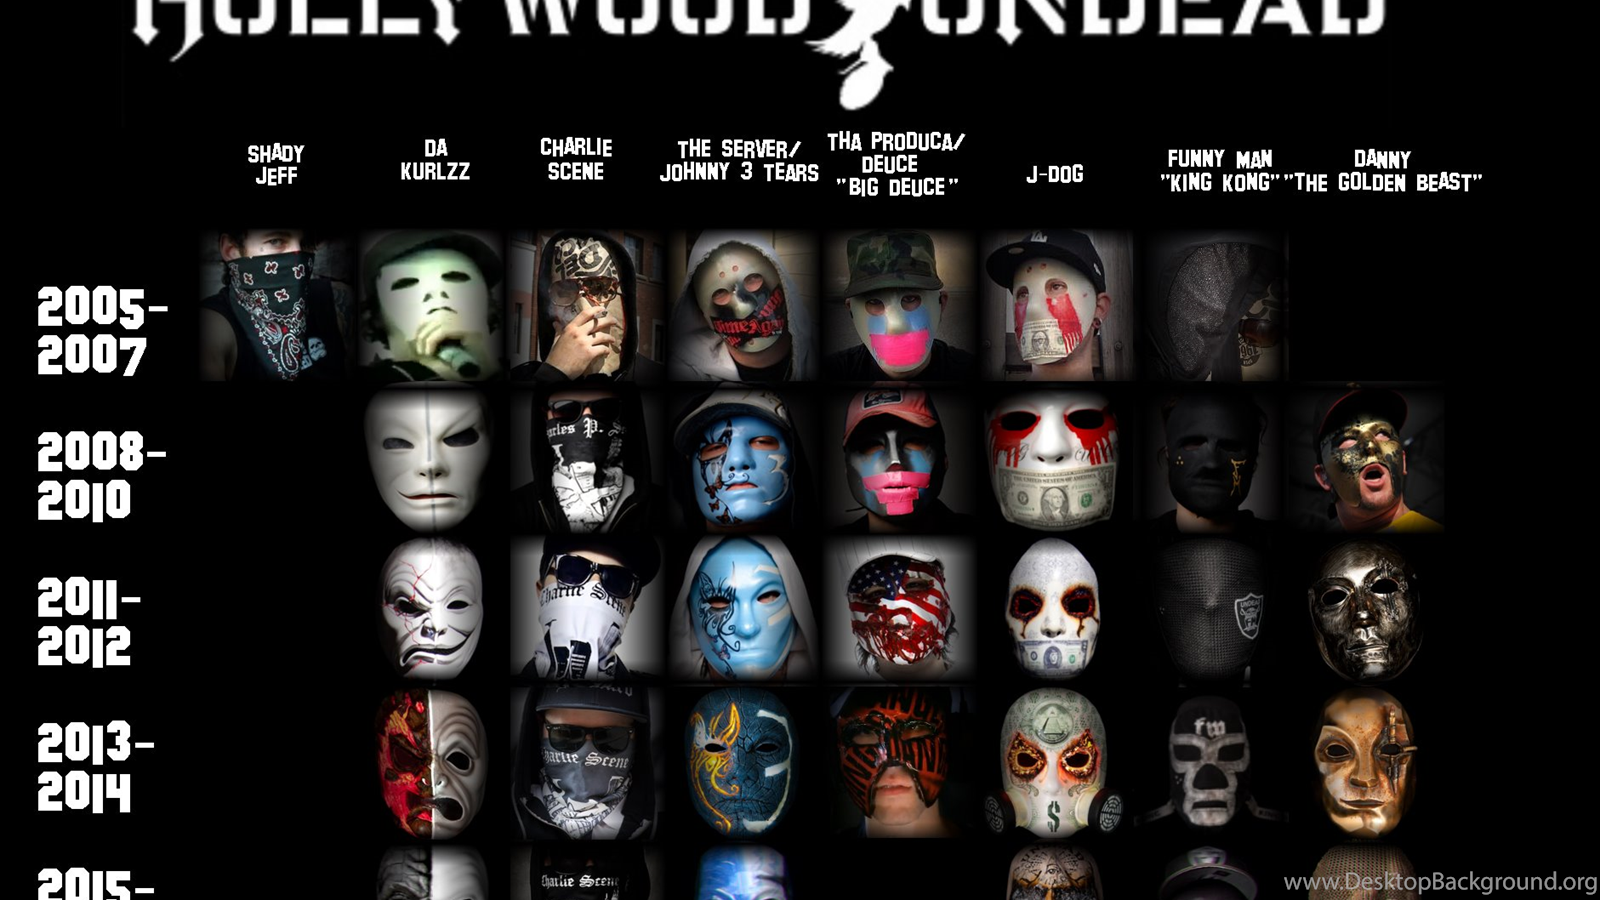 Hollywood Undead Wallpapers HollywoodUndead Desktop Background